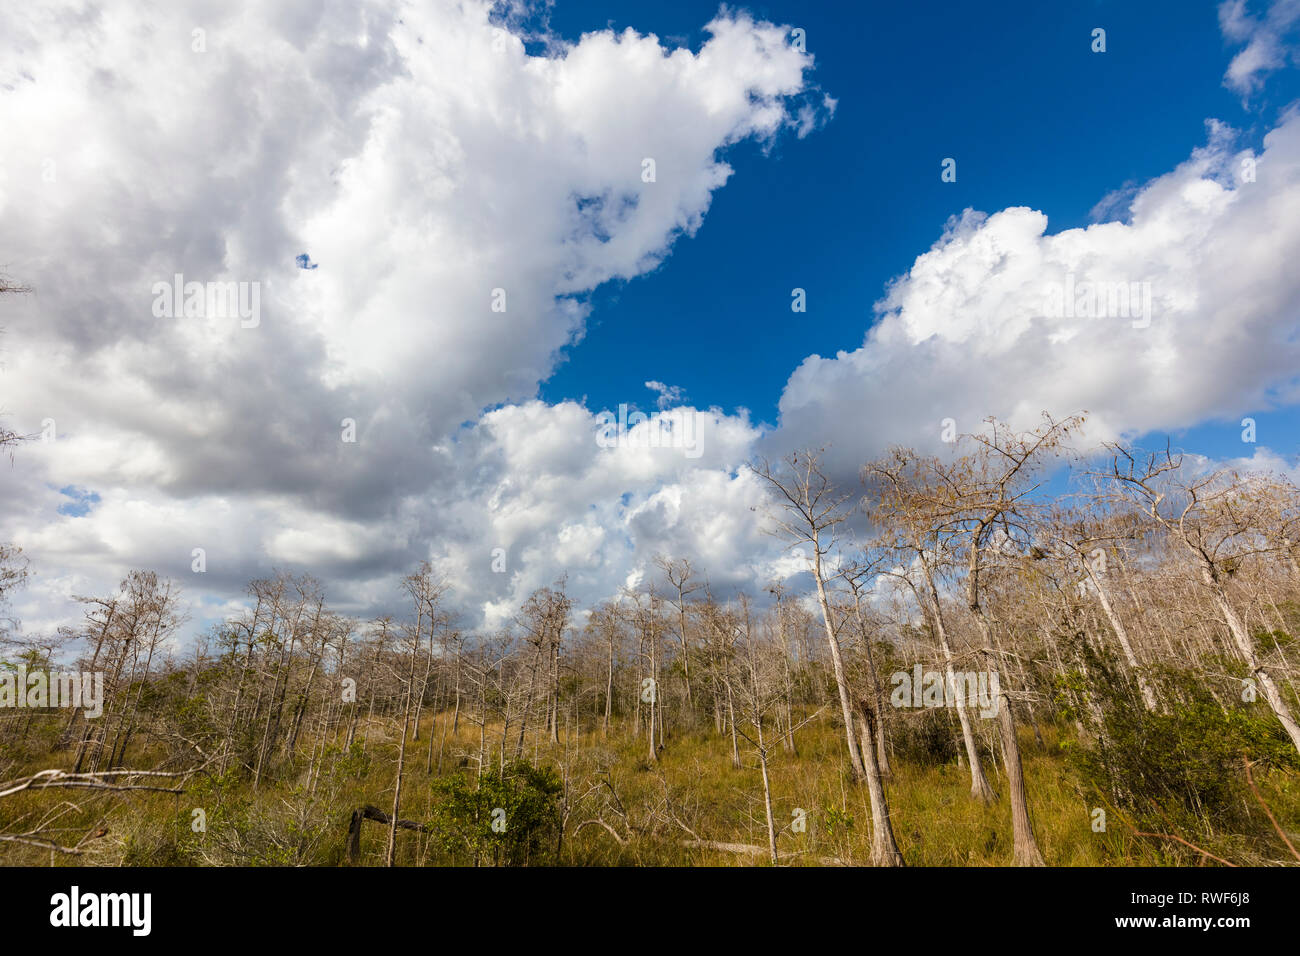 Big white clouds in blue sky behind Cypress trees at Kirby Storter Roadside Park in Big Cypress National Preserve on Tamiami Trail in southern Florida Stock Photo